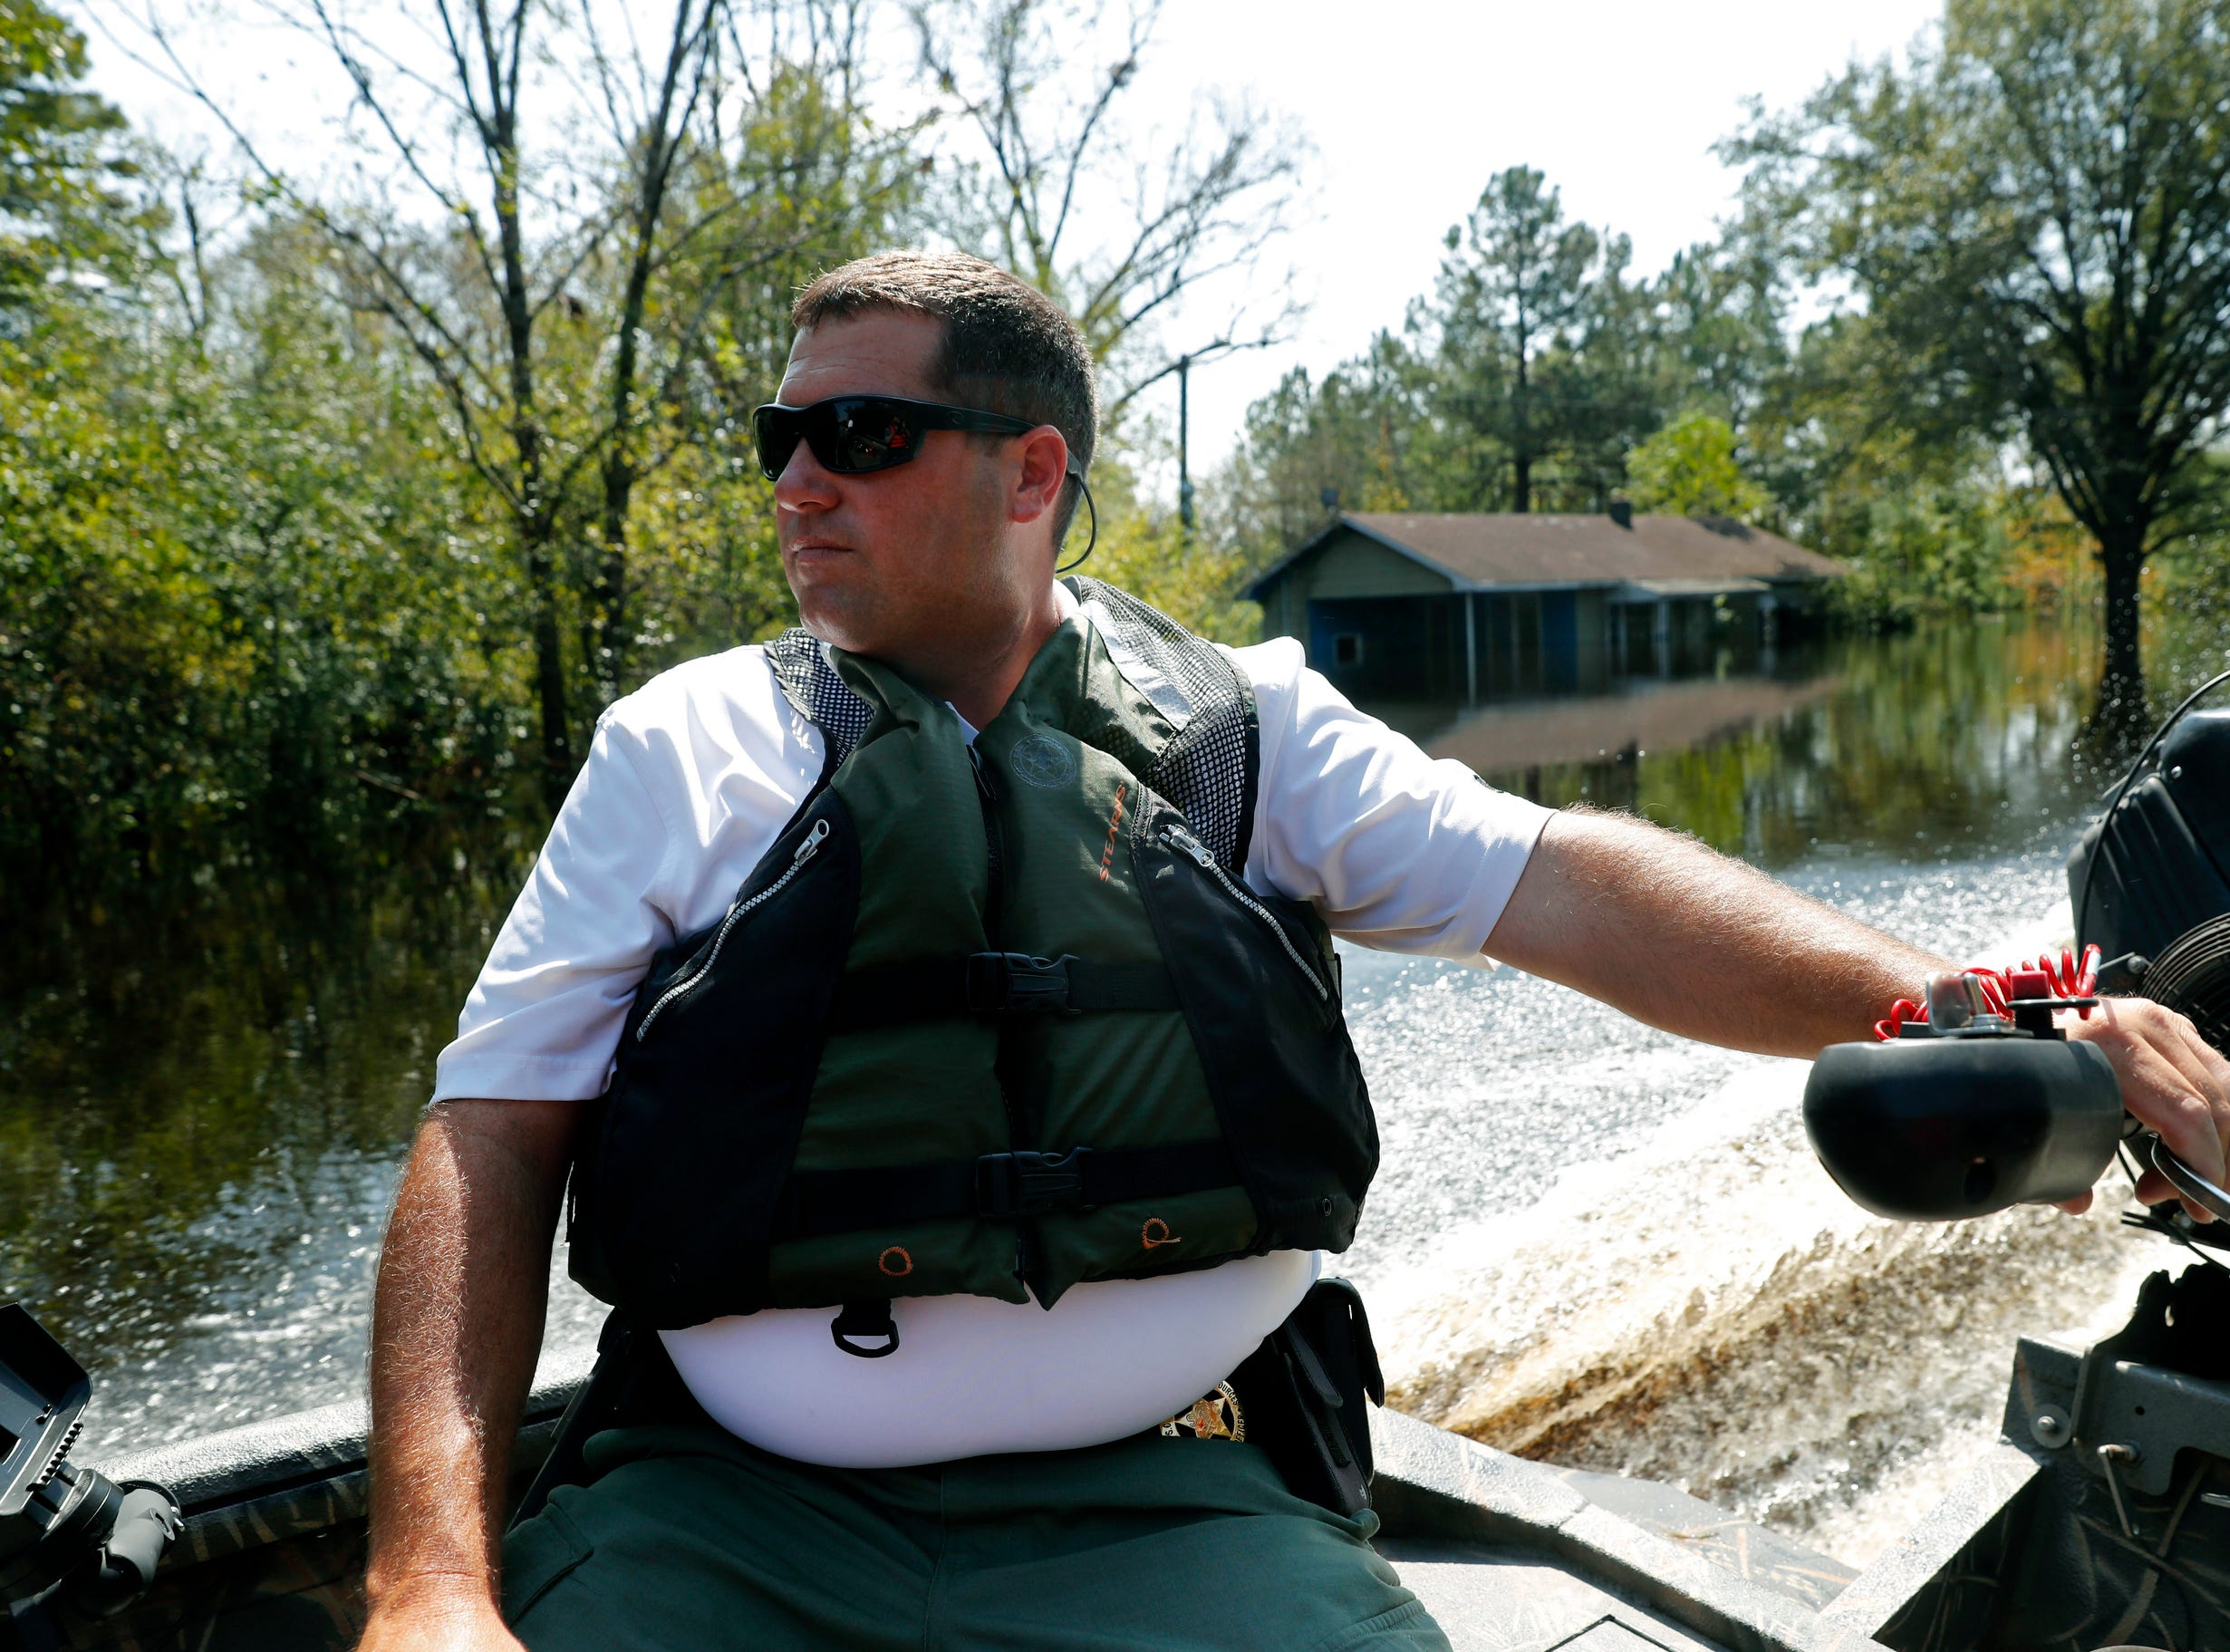 Department of Natural Resources agent James Mills Cody patrols through floodwaters in the aftermath of Hurricane Florence in Nichols, S.C.